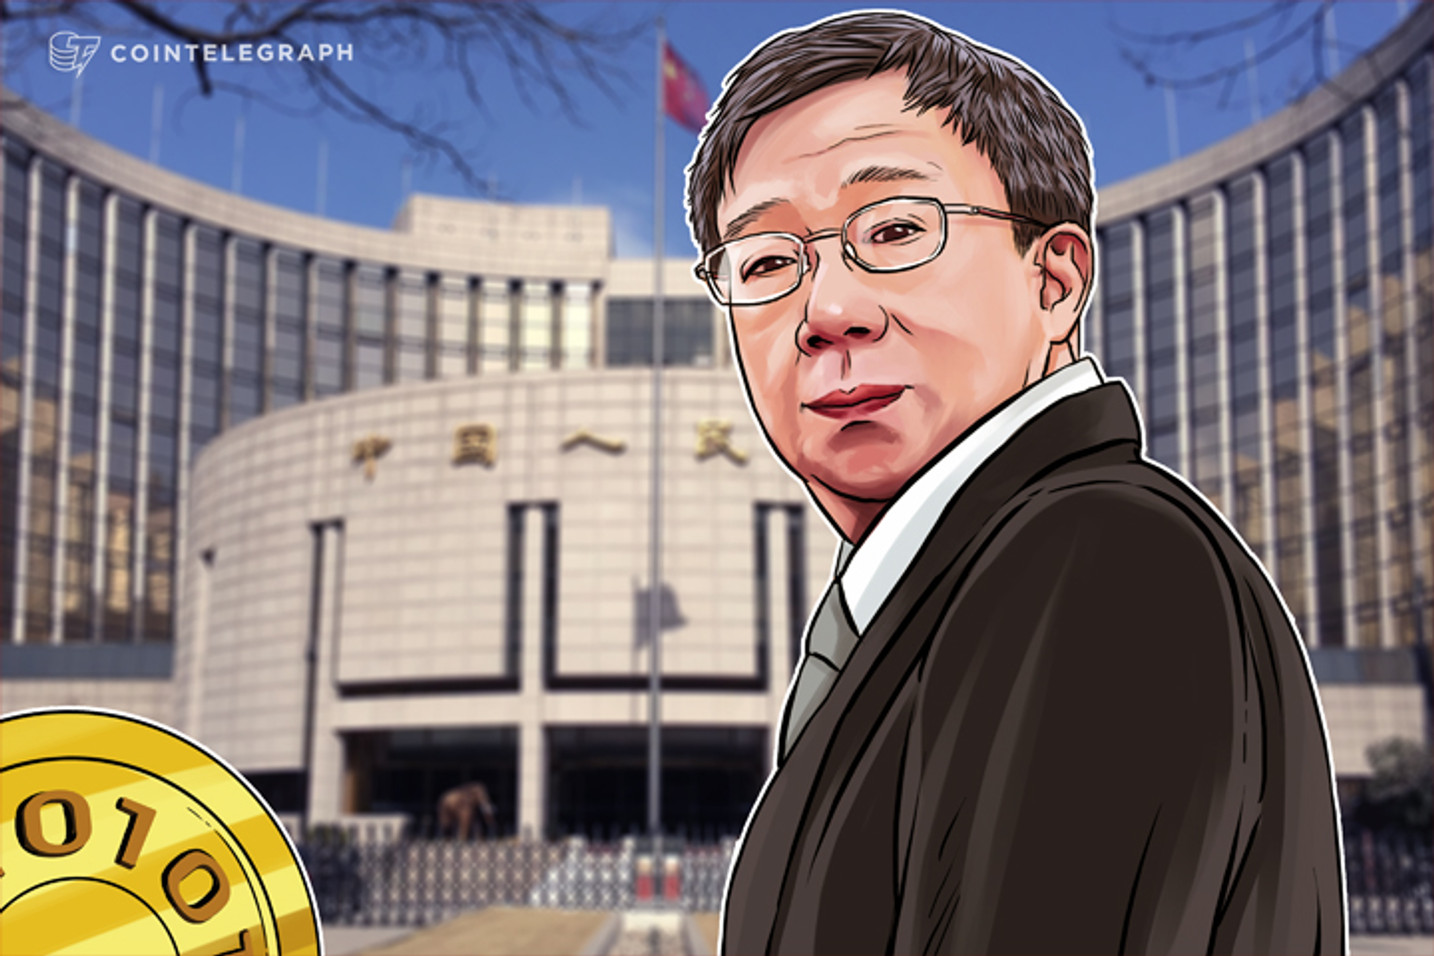 China's New Central Bank Head Is Pro-Market, Could It Impact Cryptocurrency Industry?